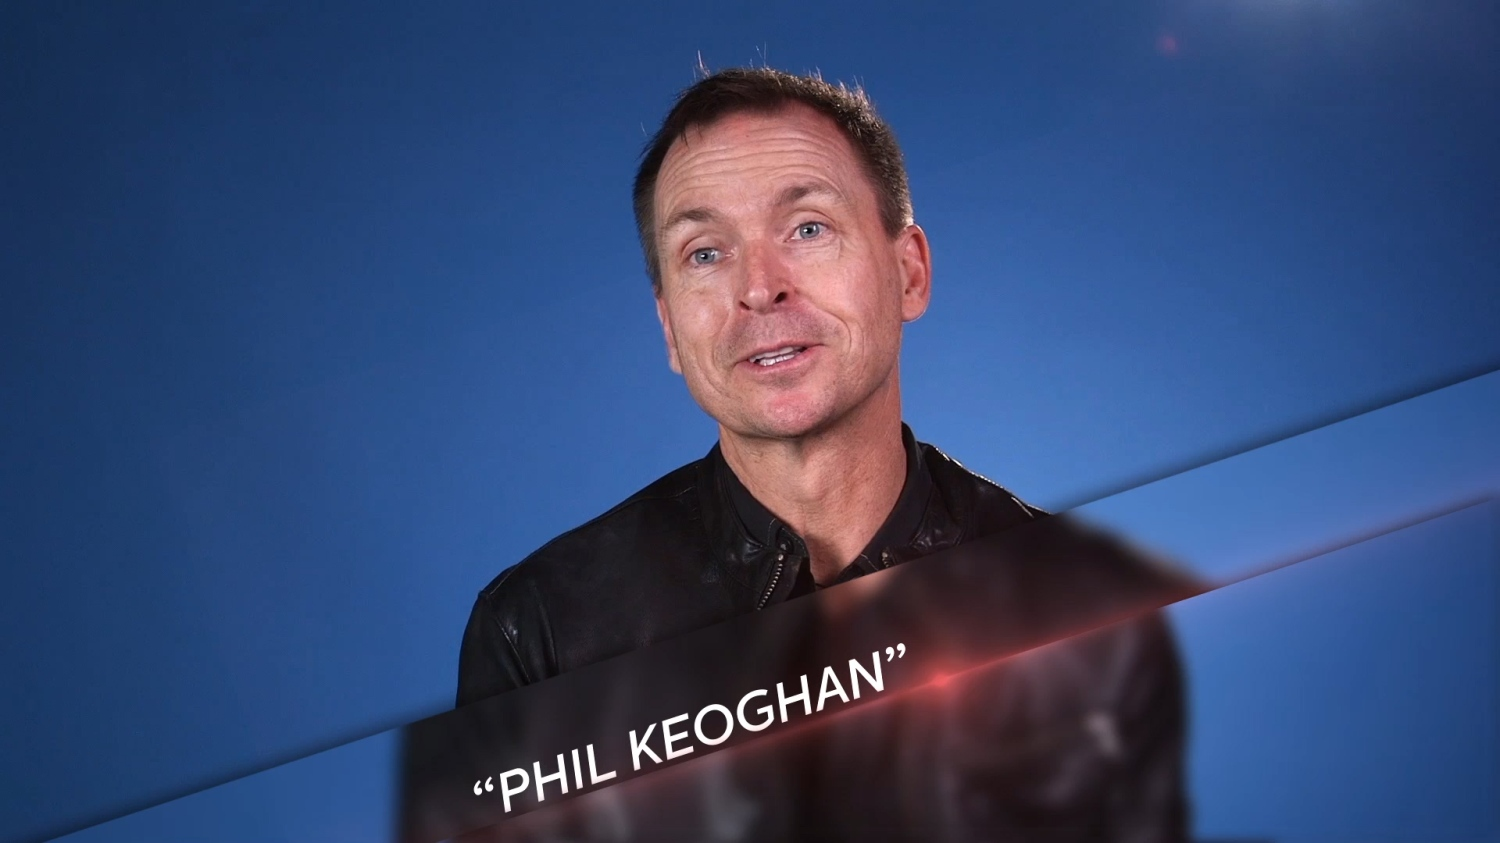 69th Annual Emmy Awards: 69 Seconds With Phil Keoghan